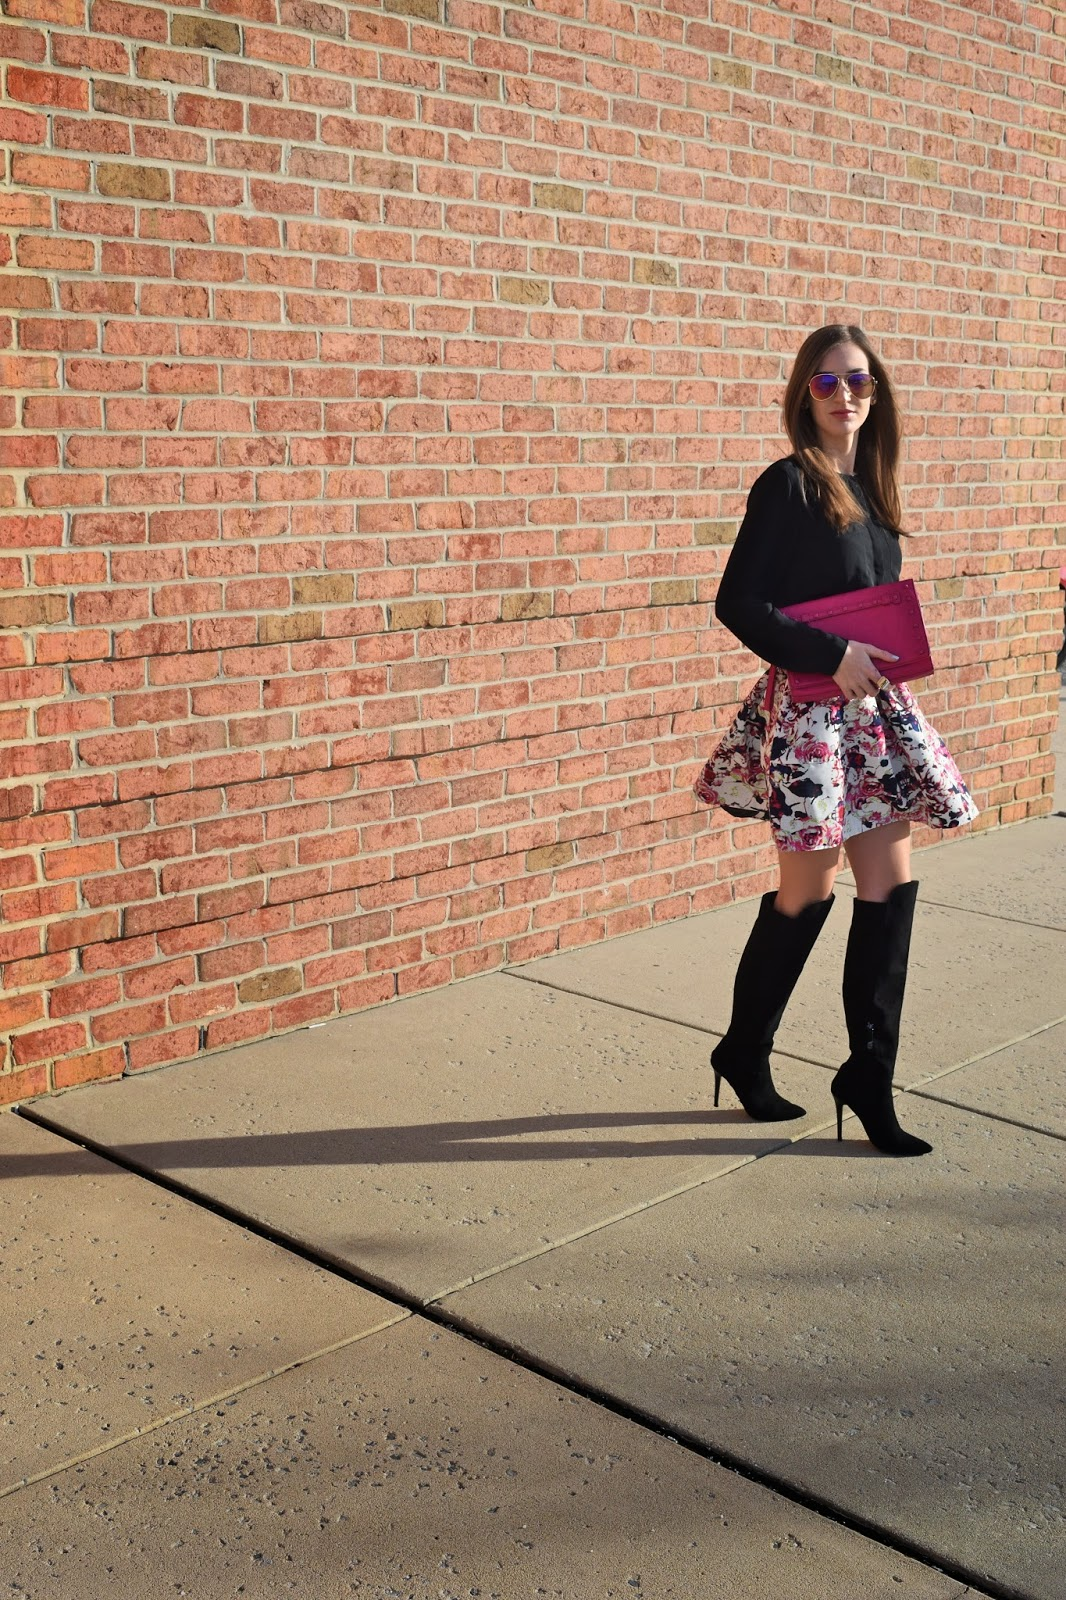 Wearing Winter Florals. Floral Skirt in Winter. Floral Skirt, Knee High Boots